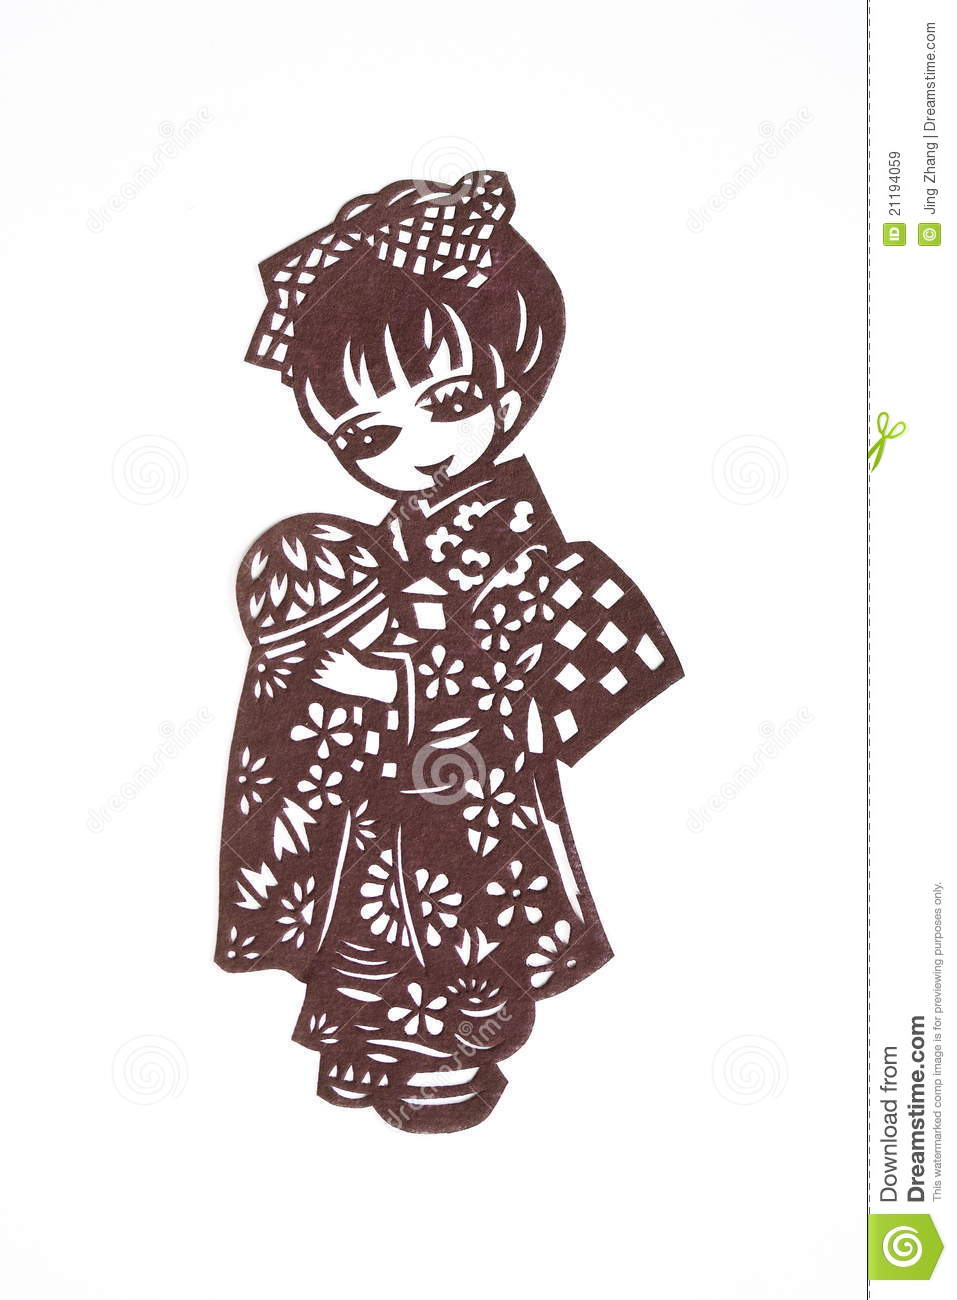 Paper-cut of a Japanese girl